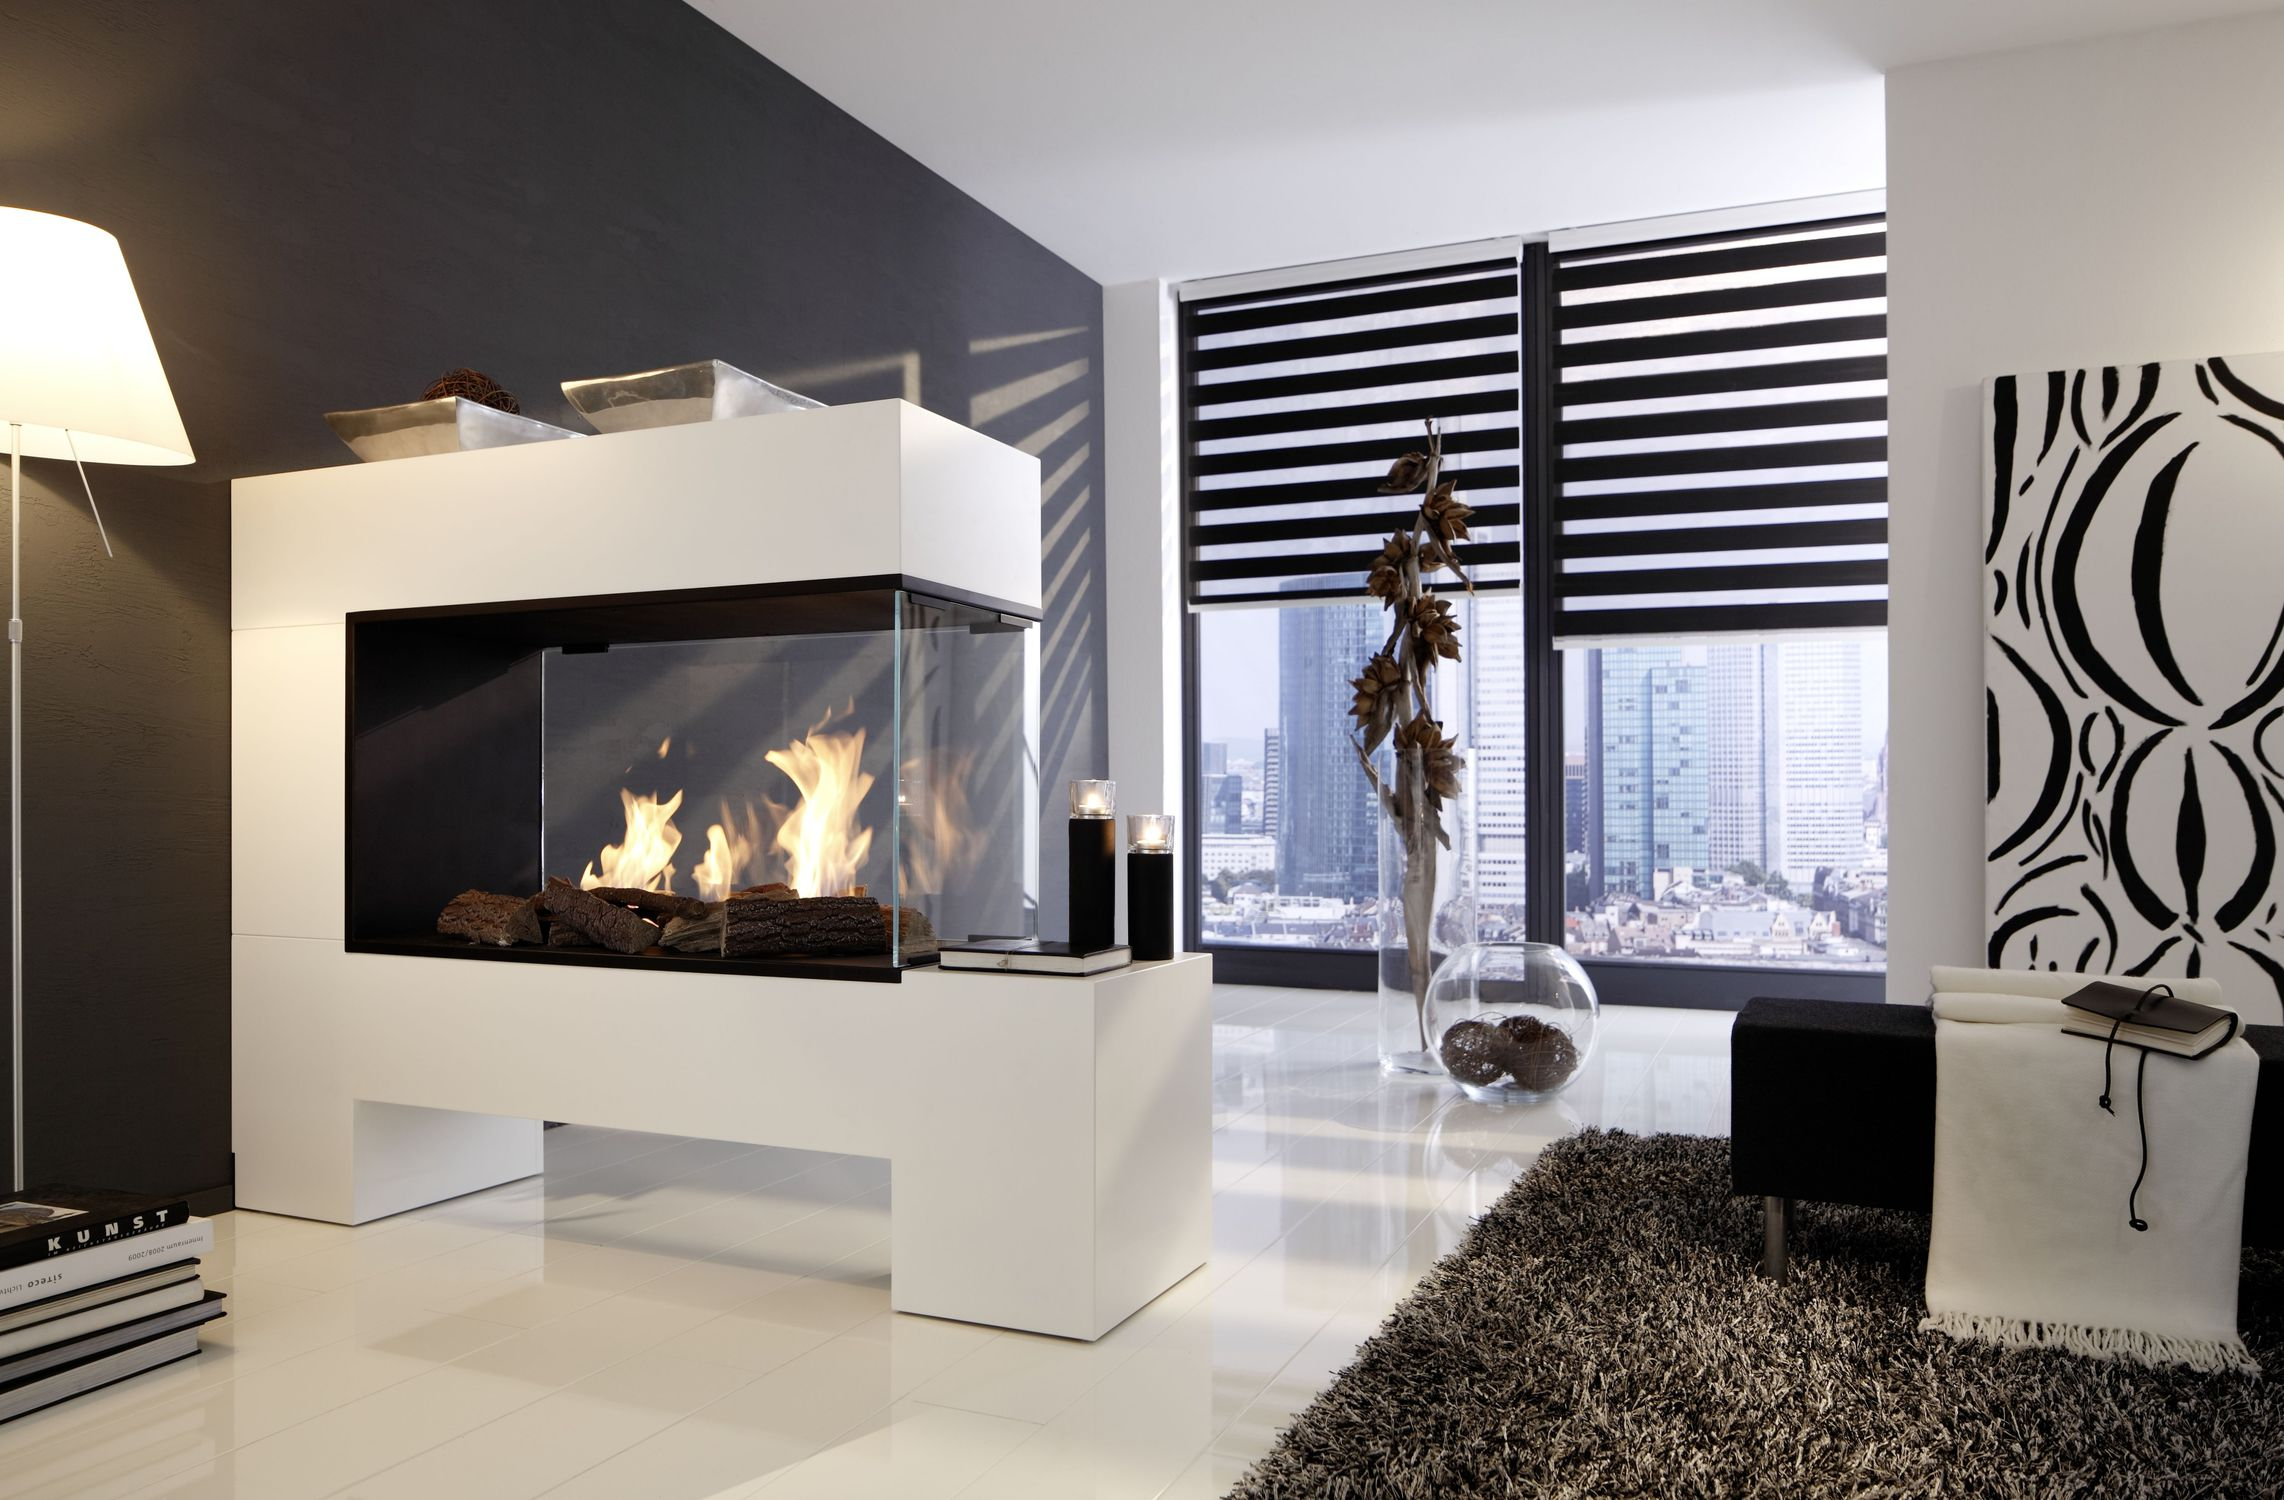 Kaminofen Store Test Bioethanol Fireplace Contemporary Open Hearth Double Sided